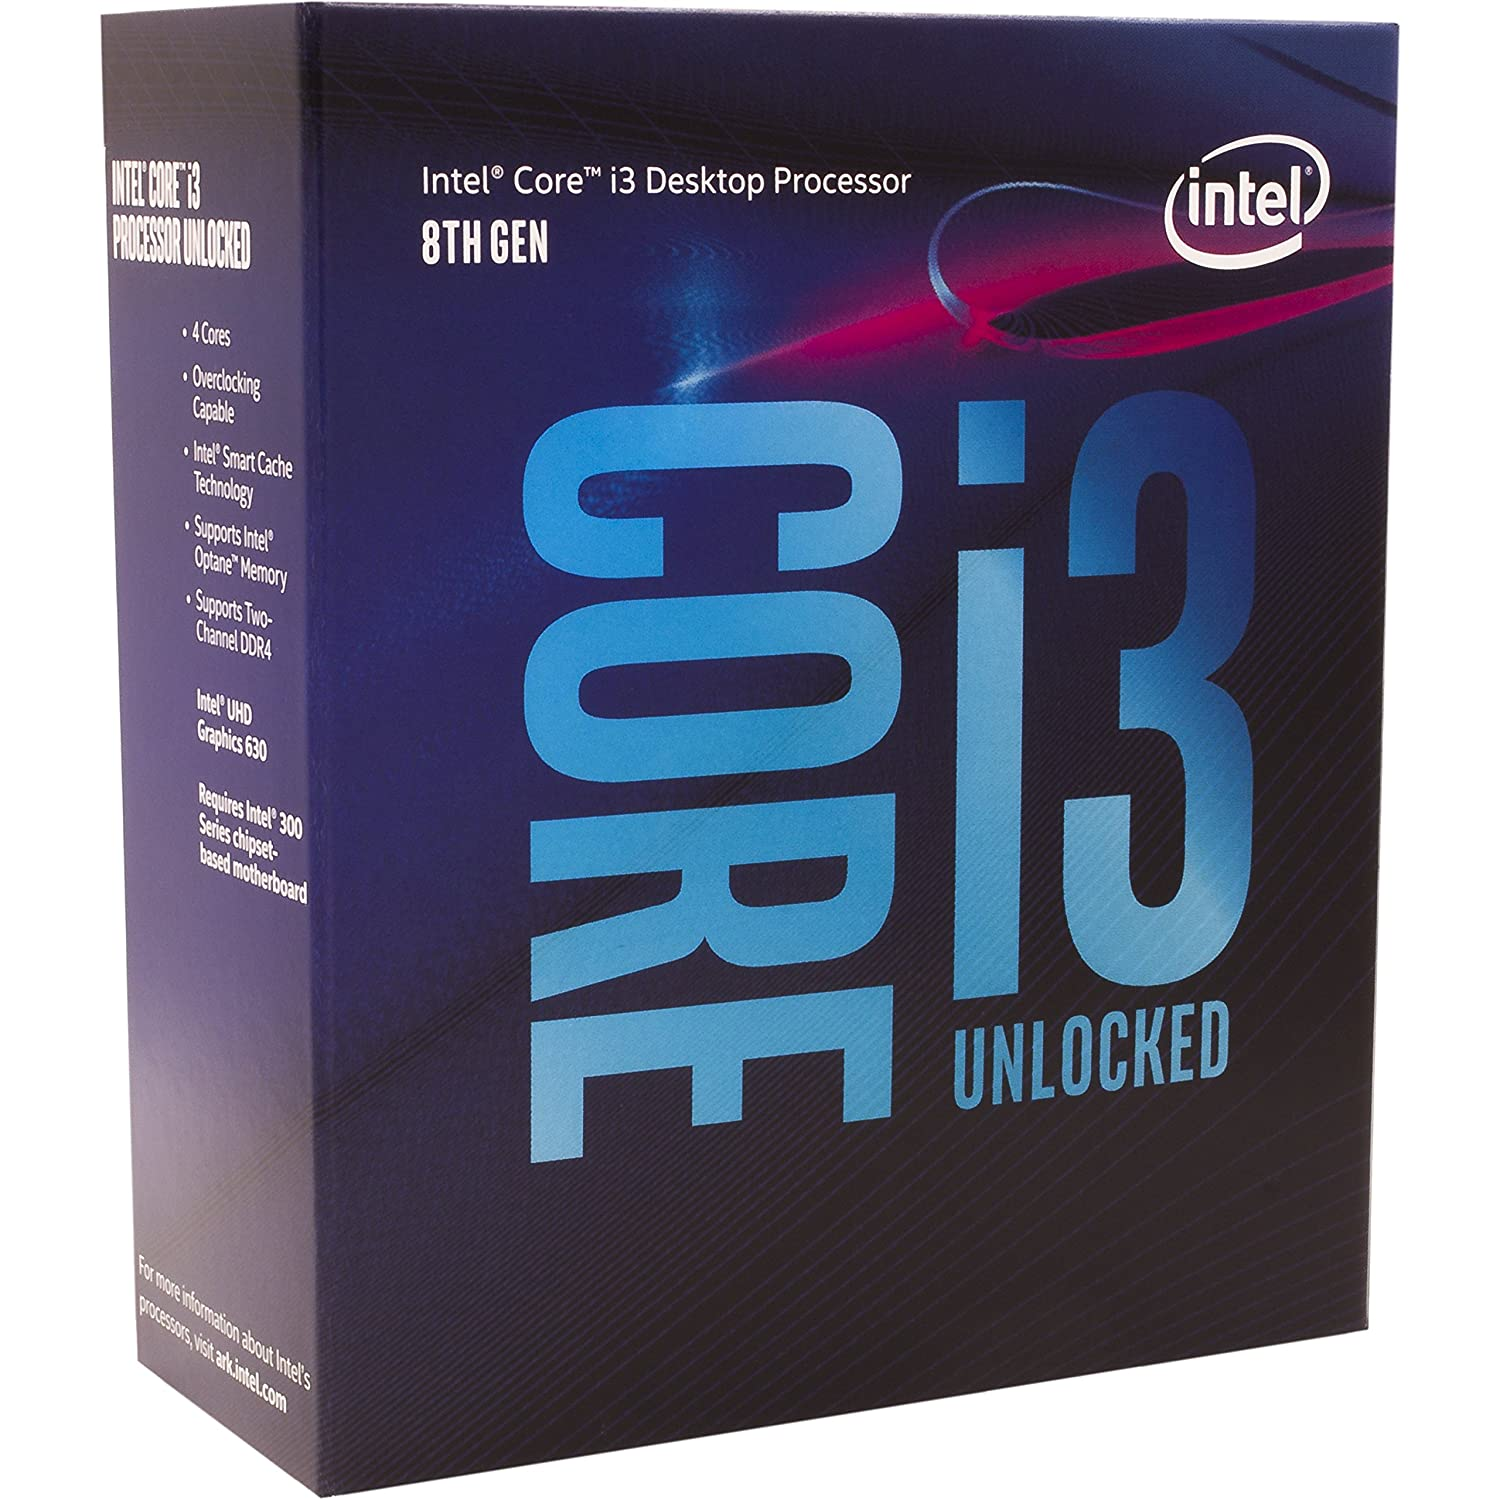 Intel Core i3-8350K Desktop Processor 4 Cores up to 4.0 GHz unlocked LGA 1151 300 Series 91W